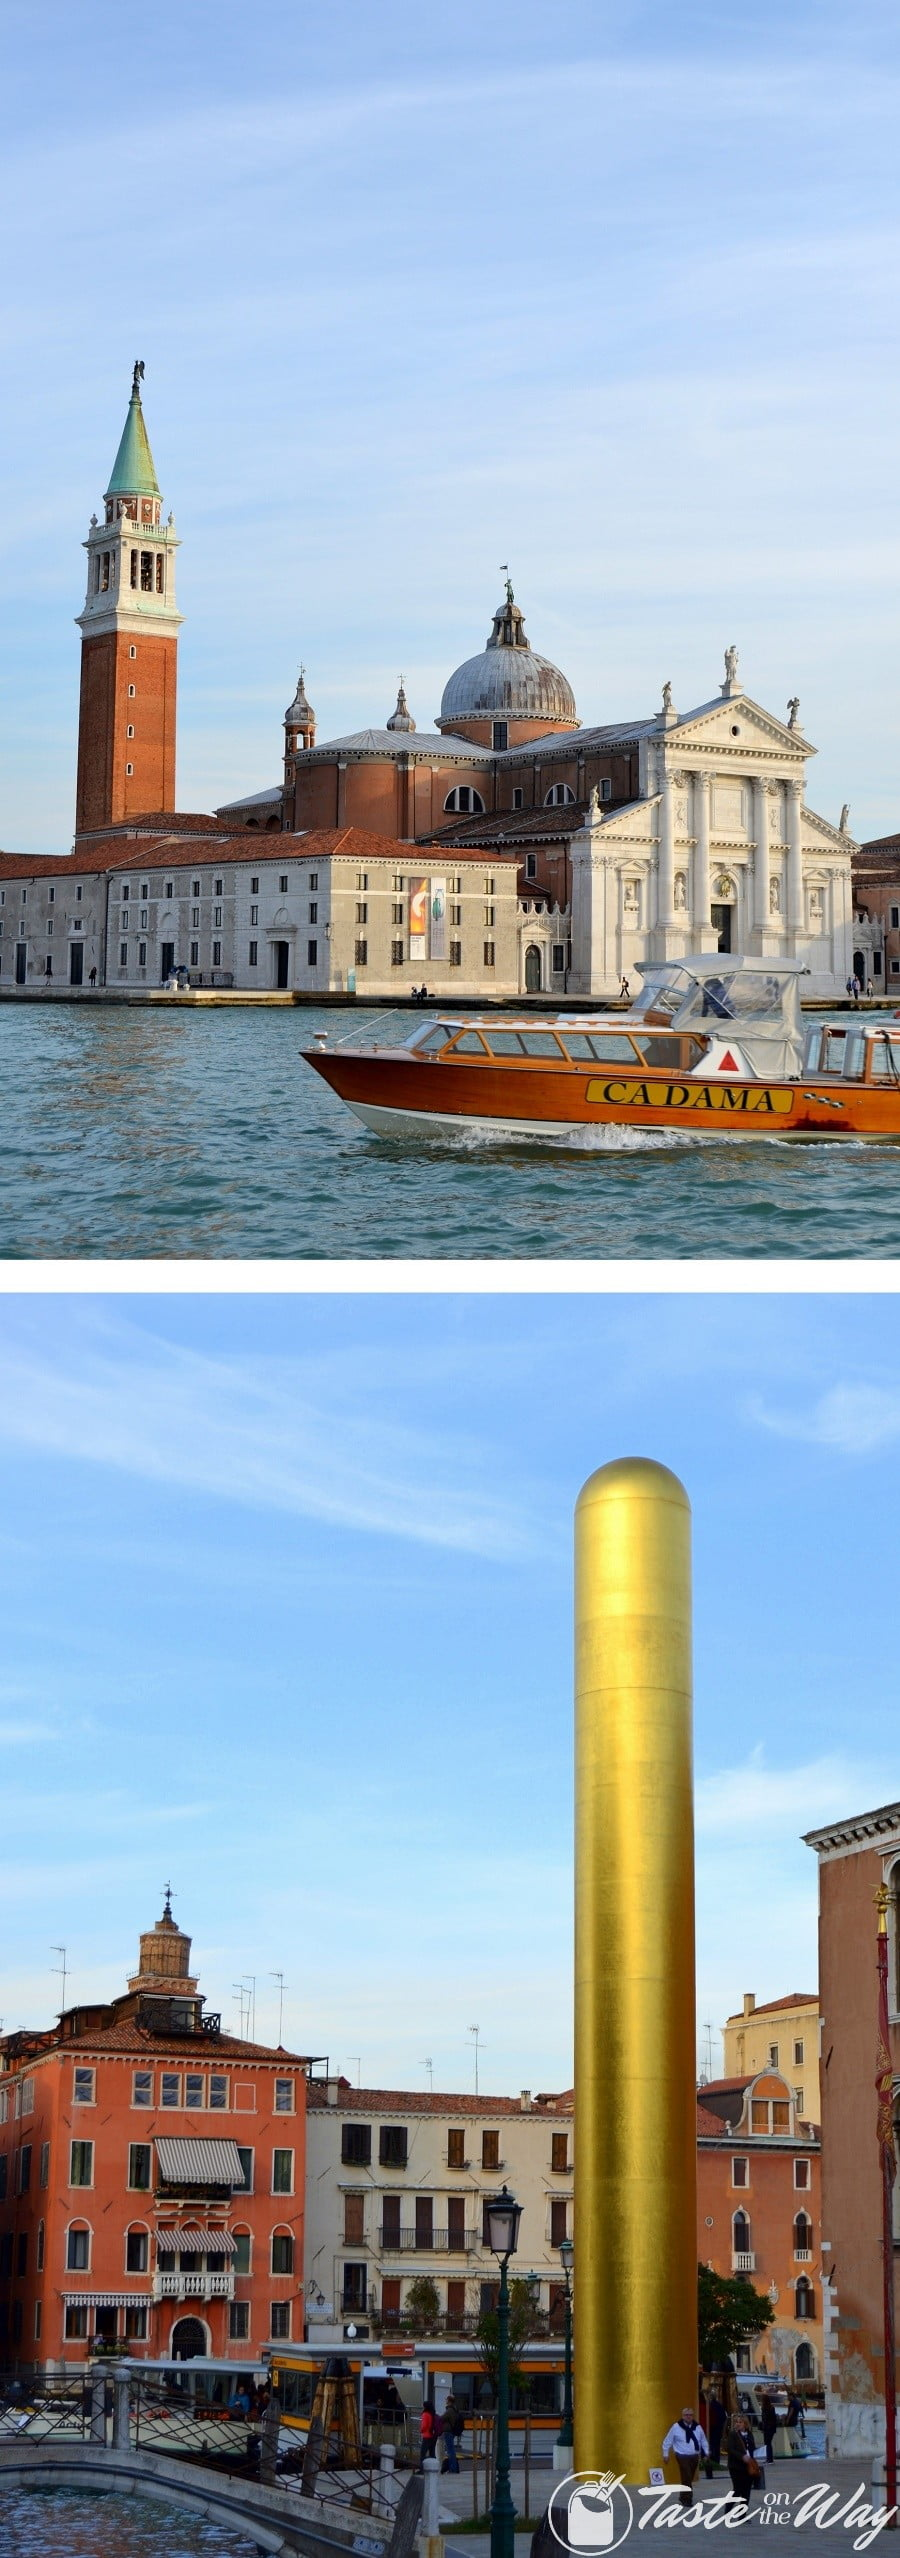 Check out these awesome pictures of towers in #Venice #travel #photography @tasteontheway